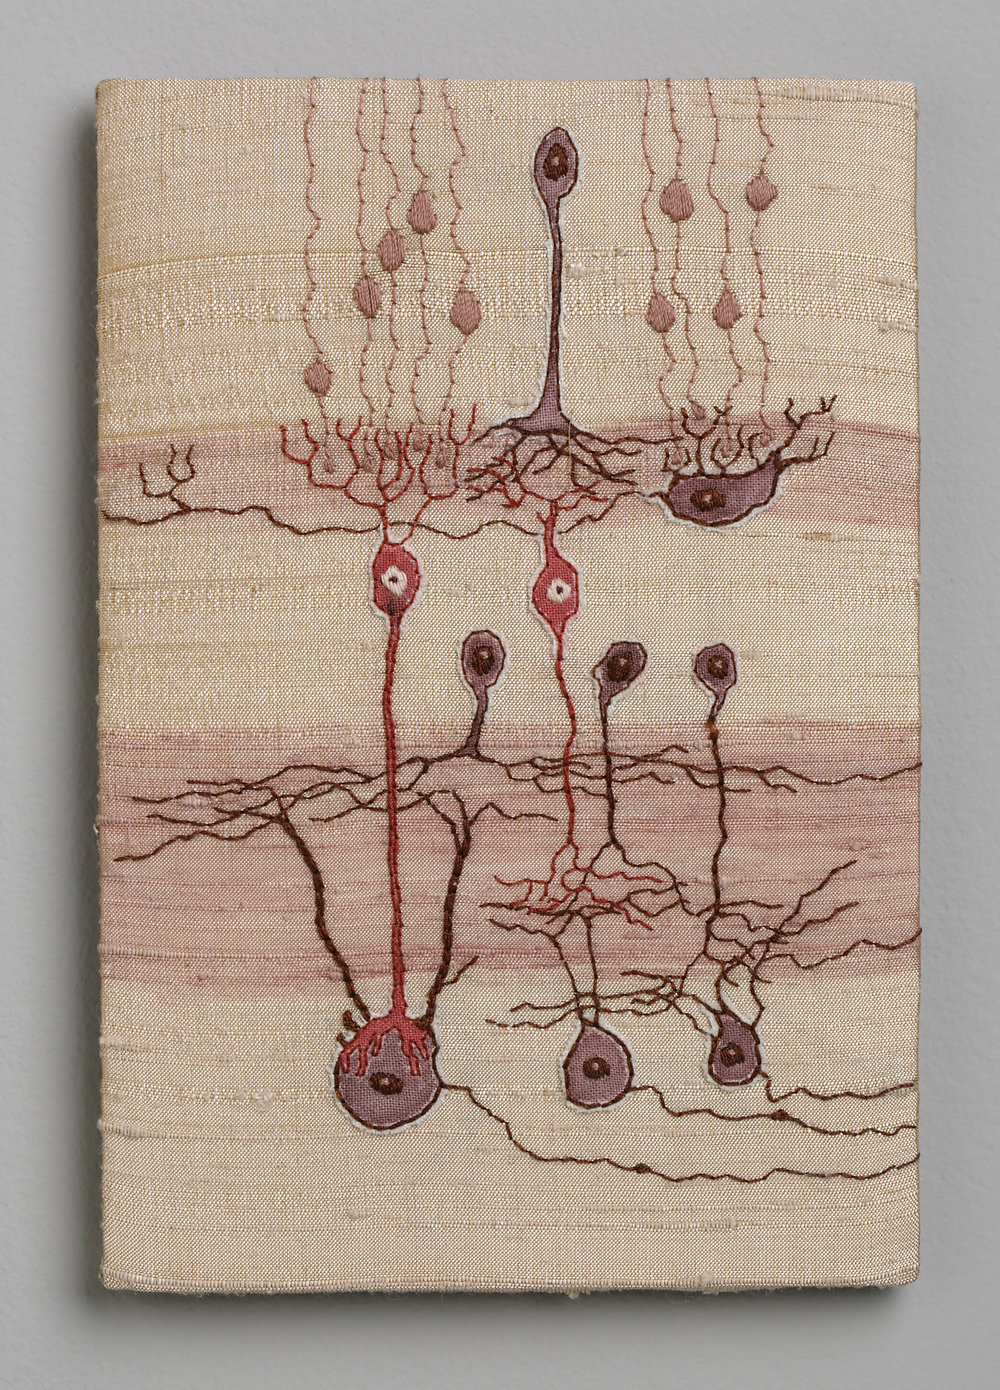 No.6 Retinal Neurons